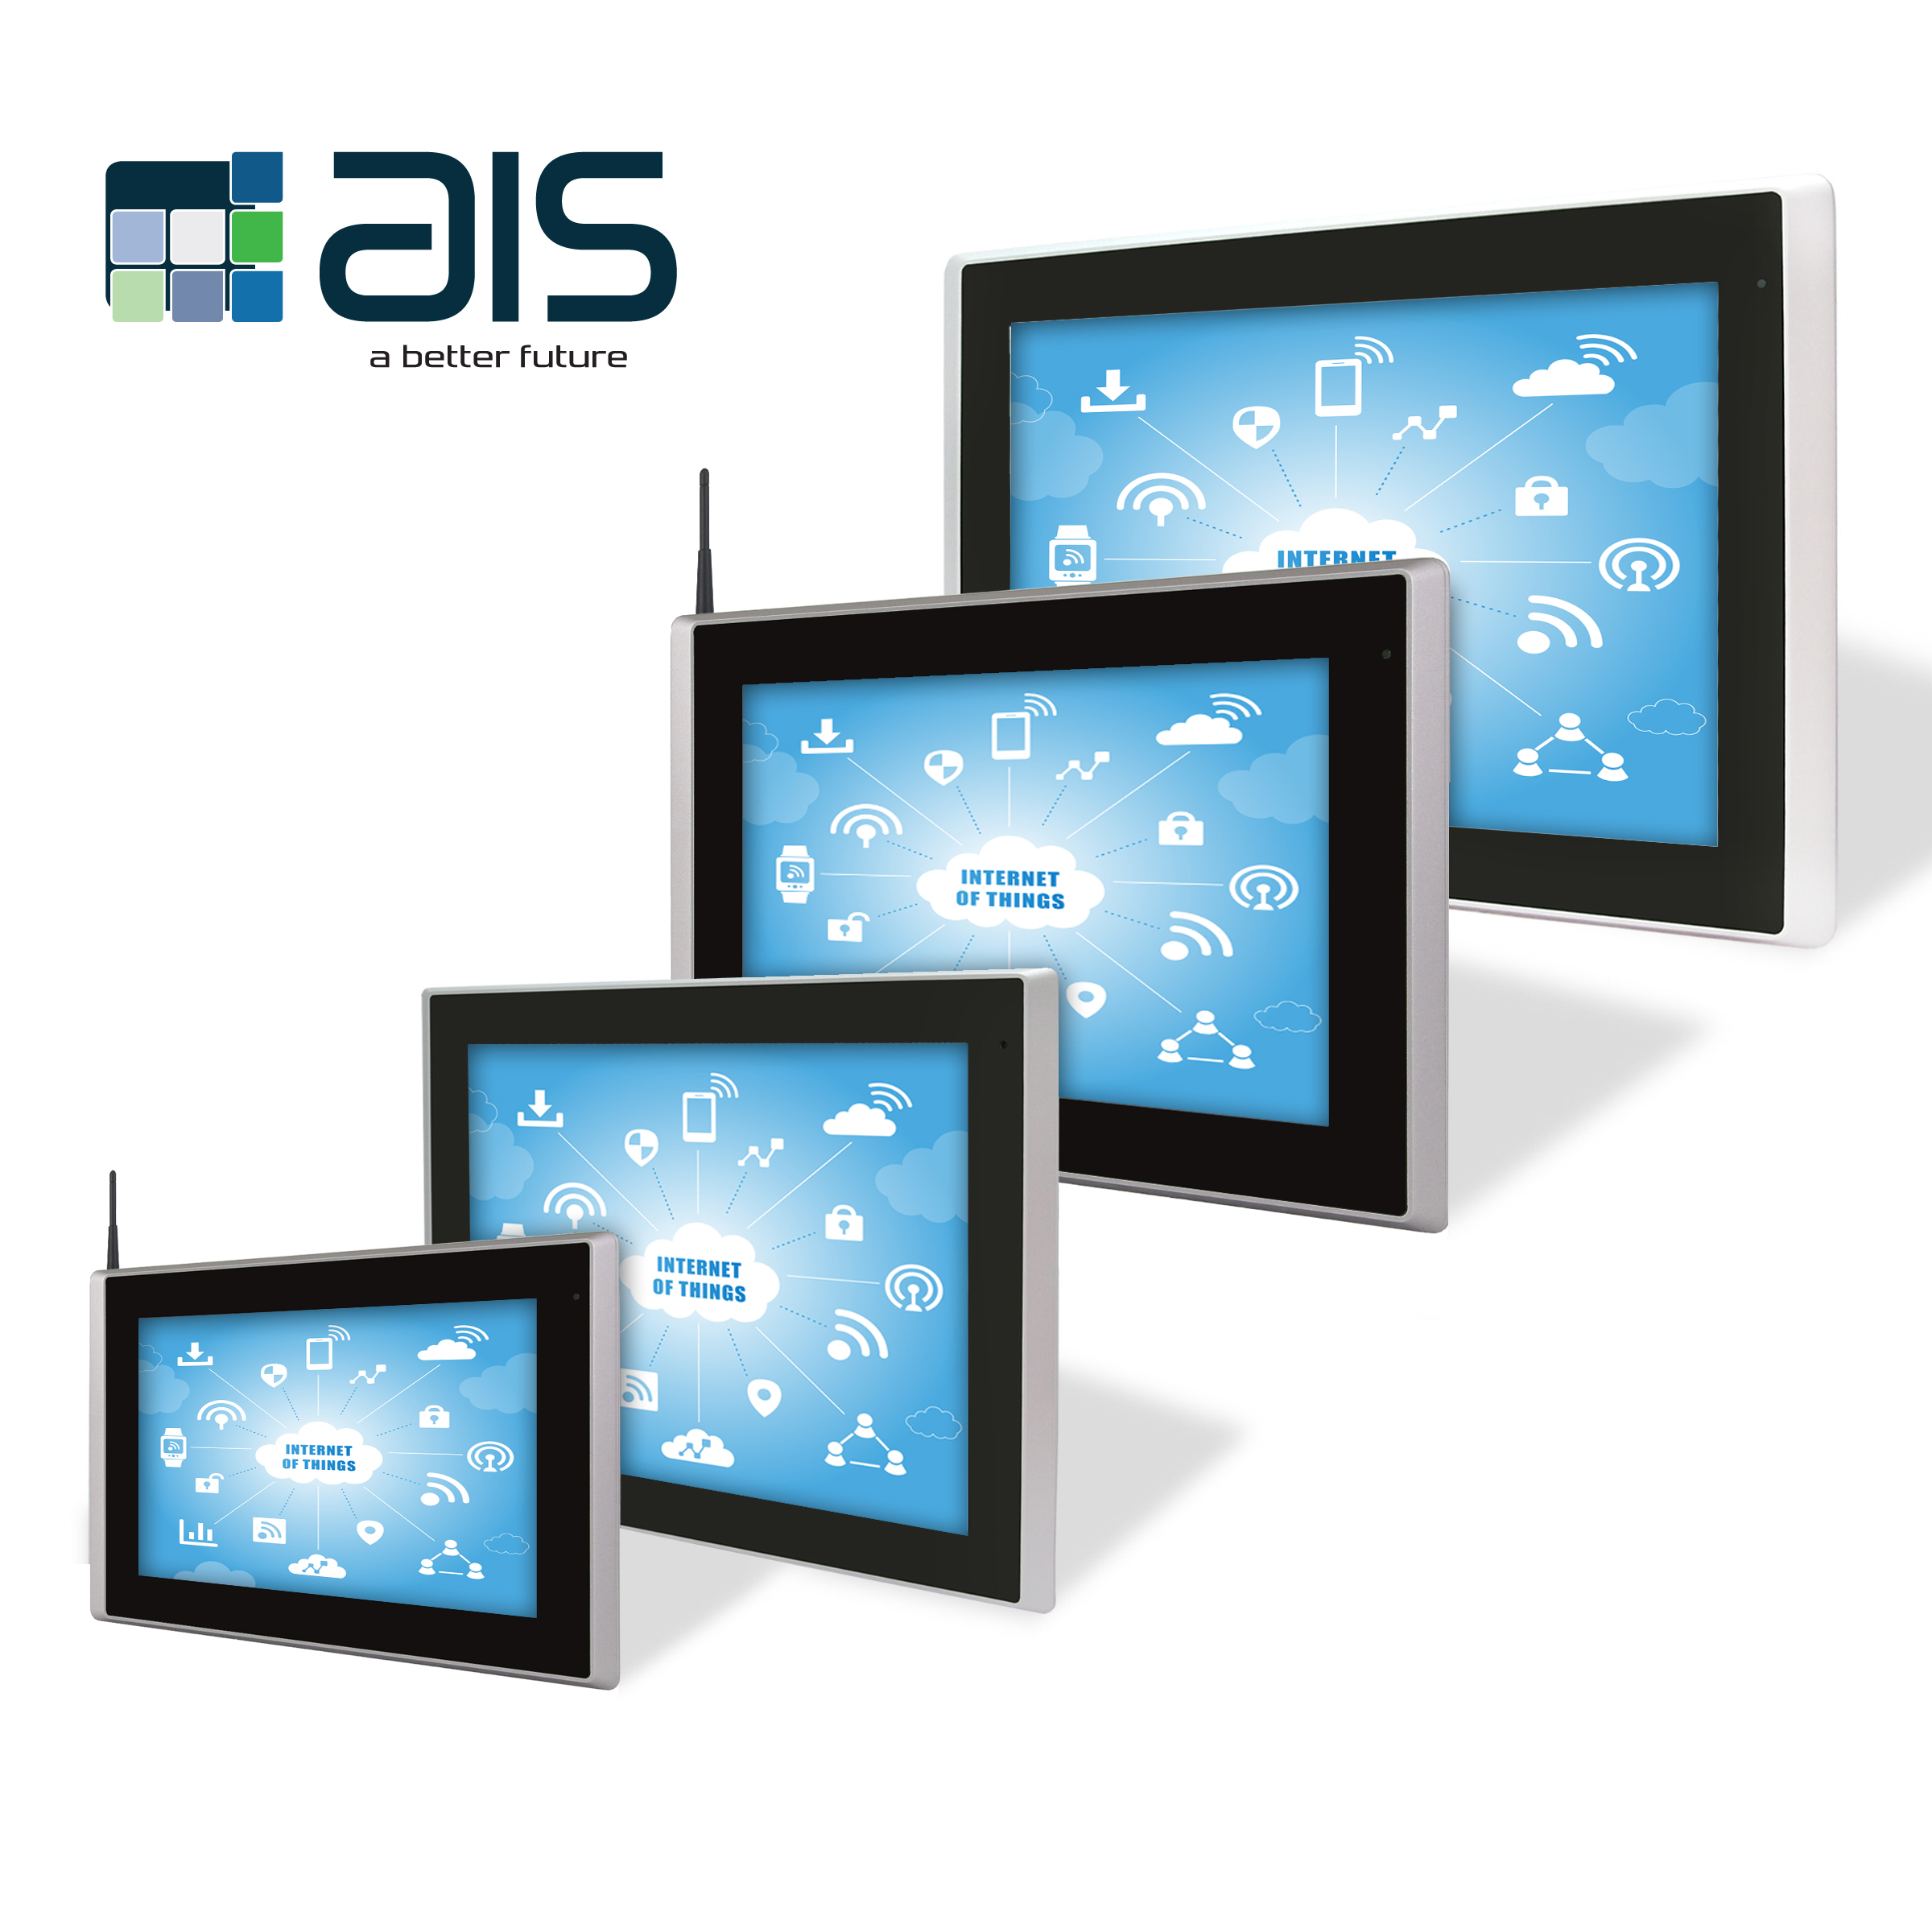 Industrial IoT HMIs and Panel PCs with CE and FCC Certification